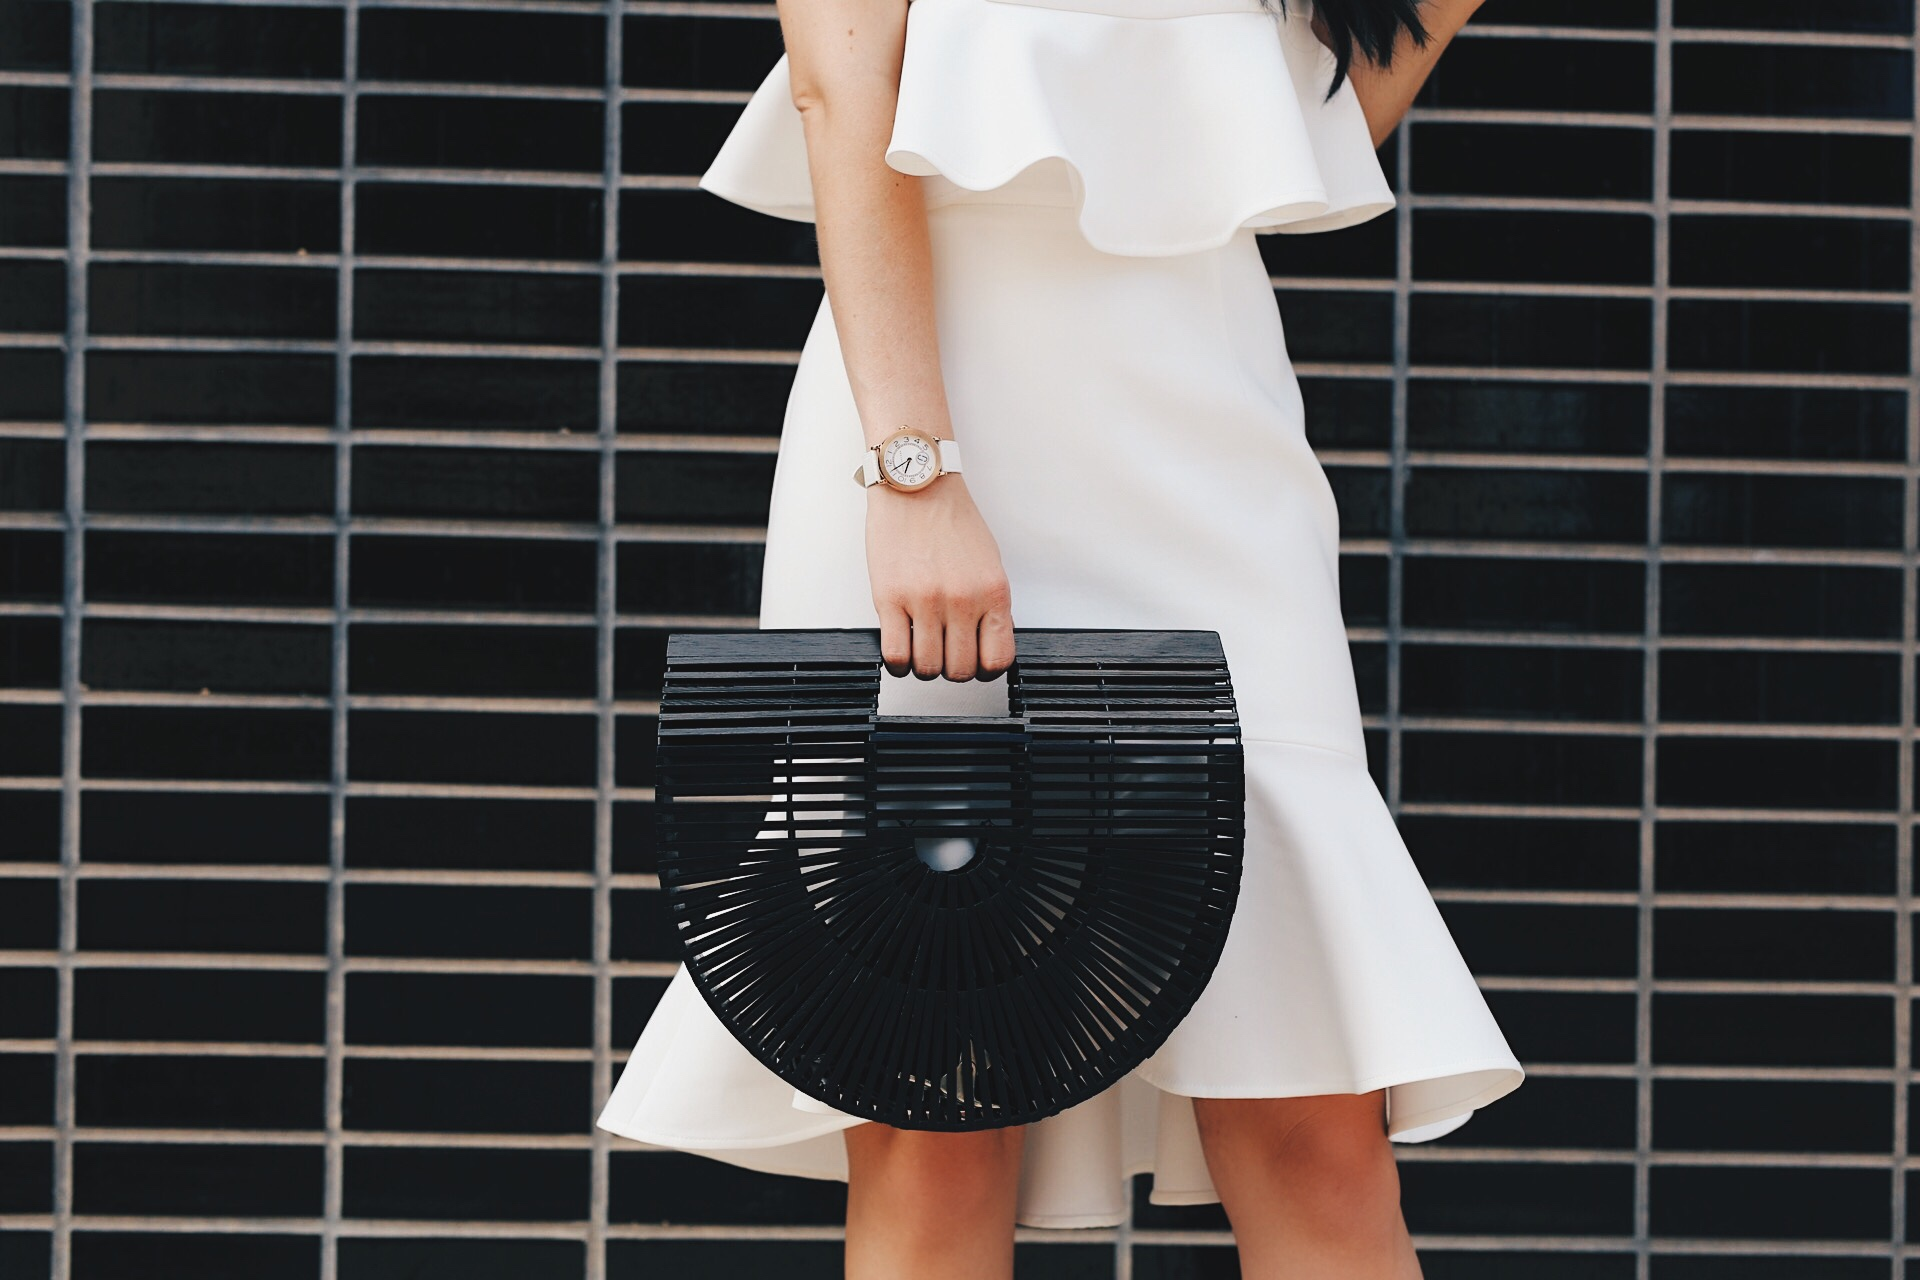 DTKAustin shares a versatile white top and skirt set from Chicwish. Perfect for Spring/Summer and the upcoming Kentucky Derby. Black Bamboo bag from Red Dress Boutique or Cult Gaia. - White Two Piece Set styled by popular Austin fashion blogger, Dressed to Kill